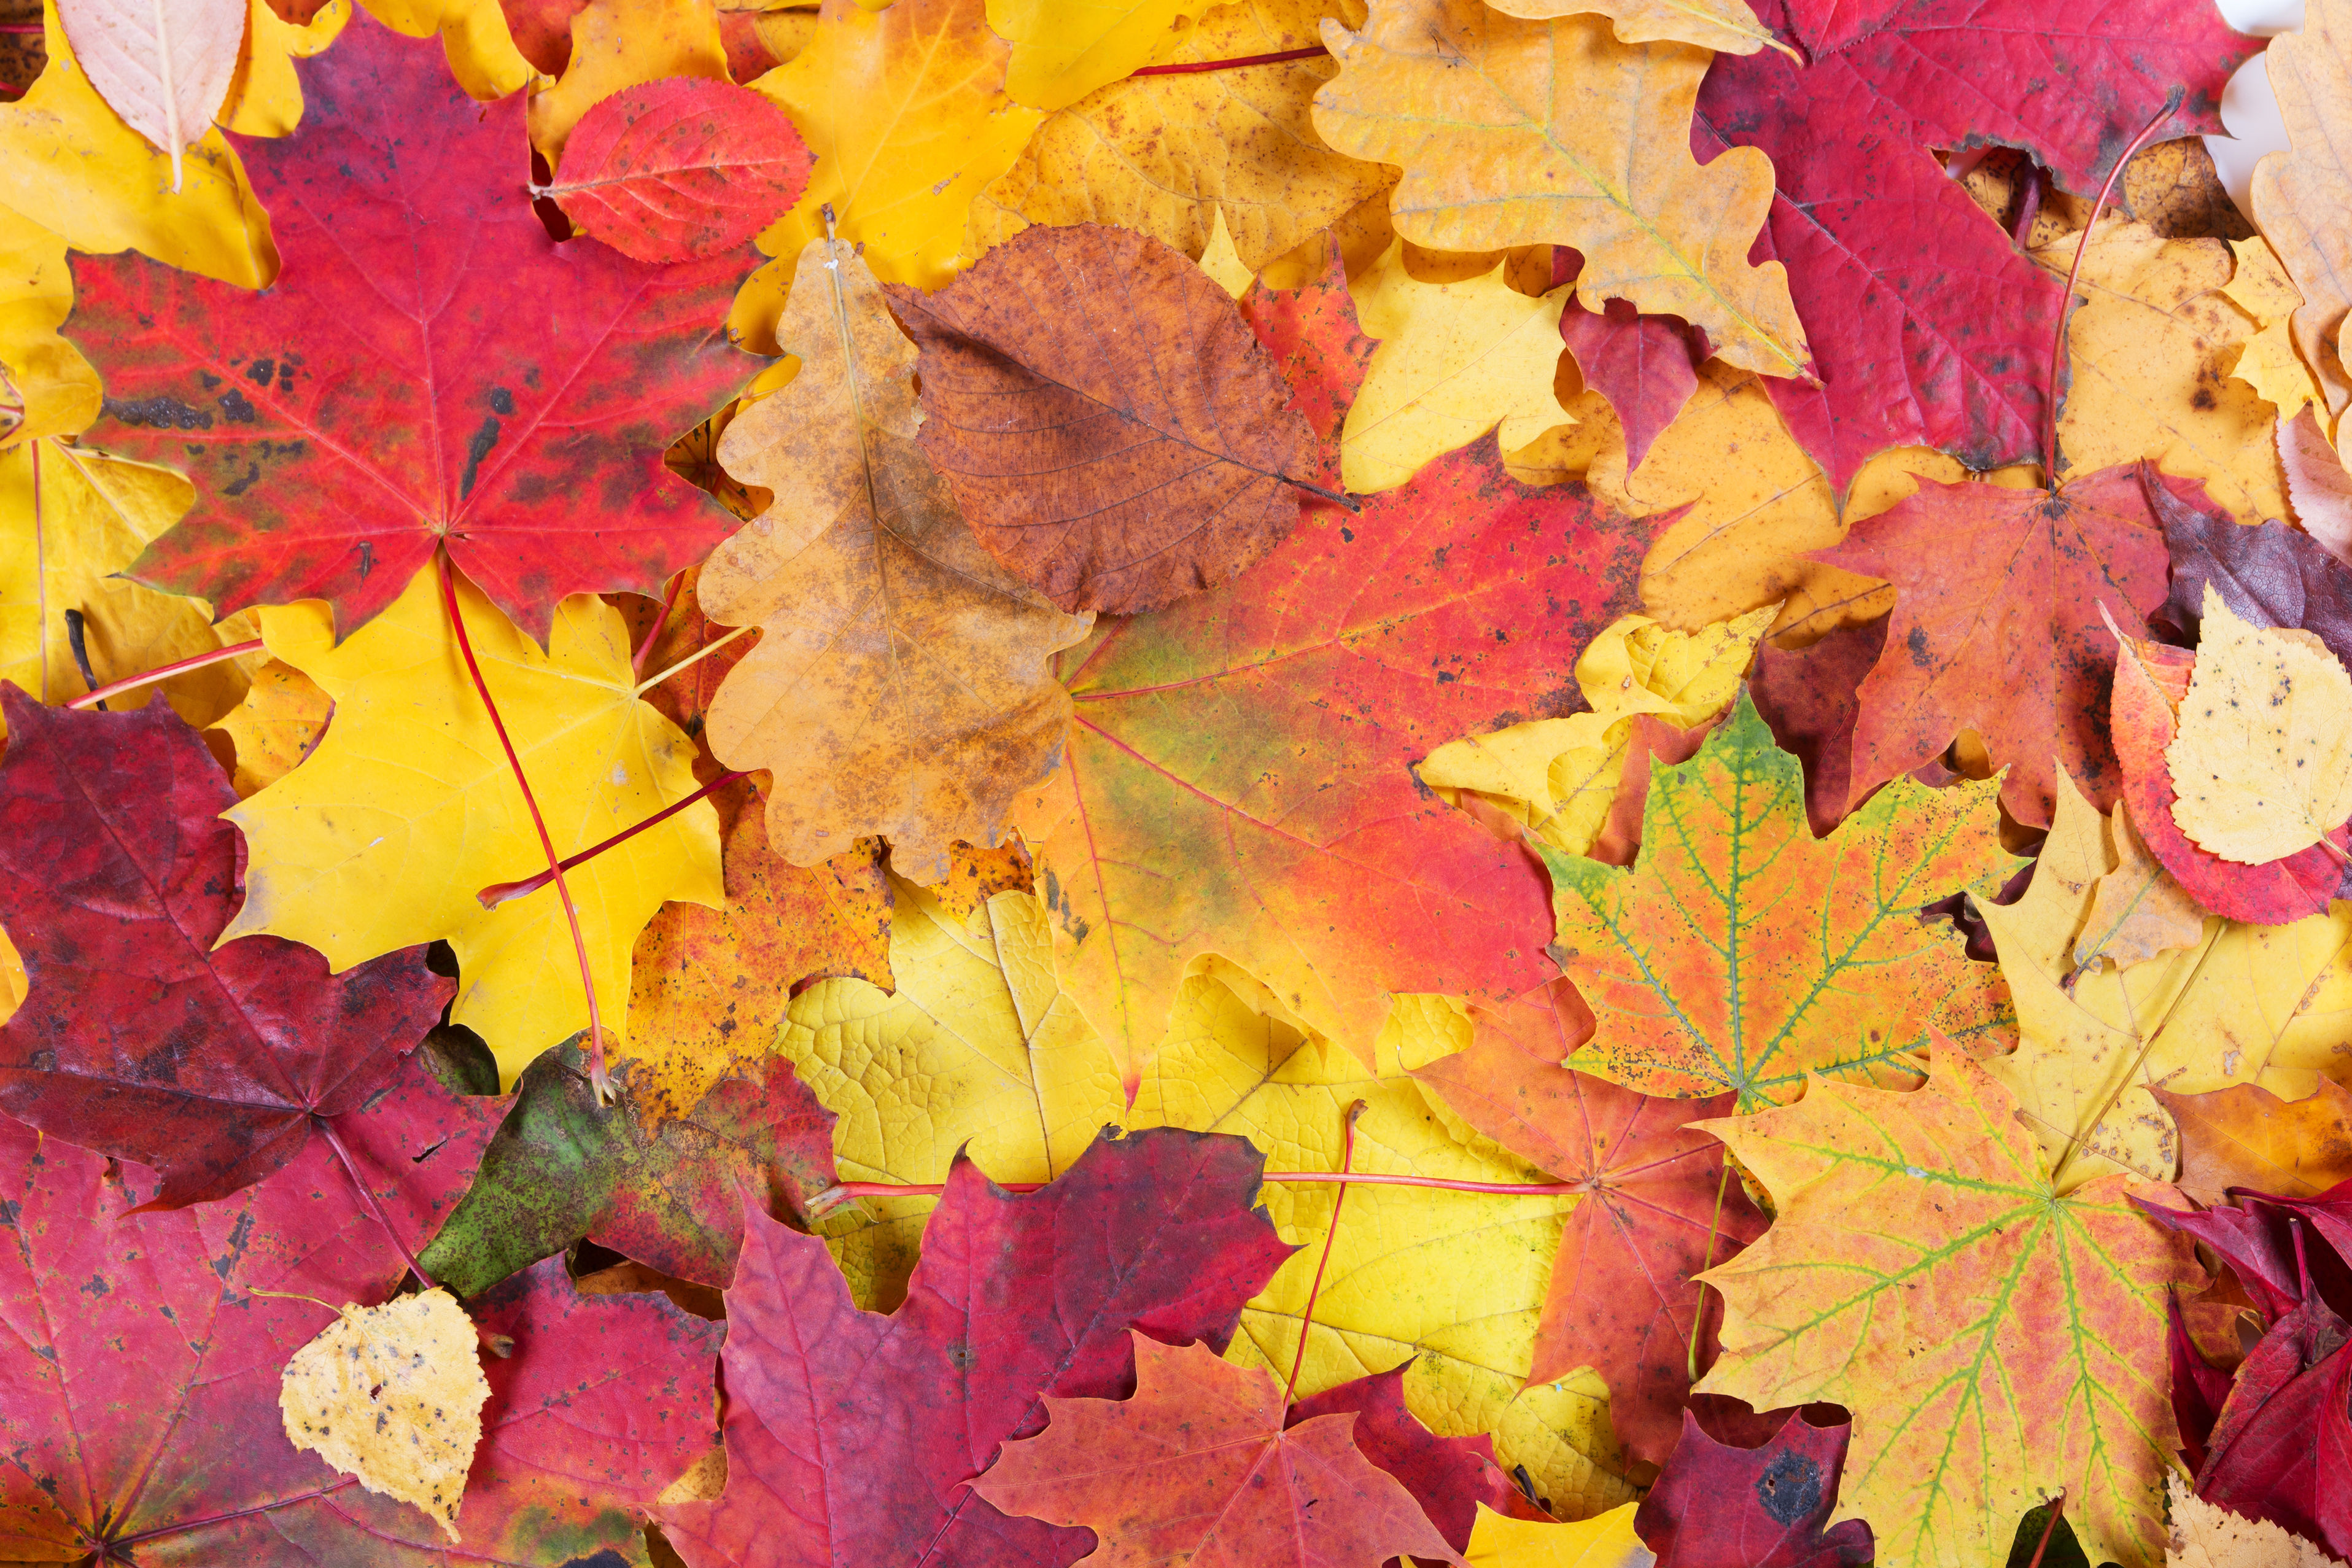 Leaves Wallpaper Fall 45364195 Autumn Fall Leaves Background Garden Amp Home